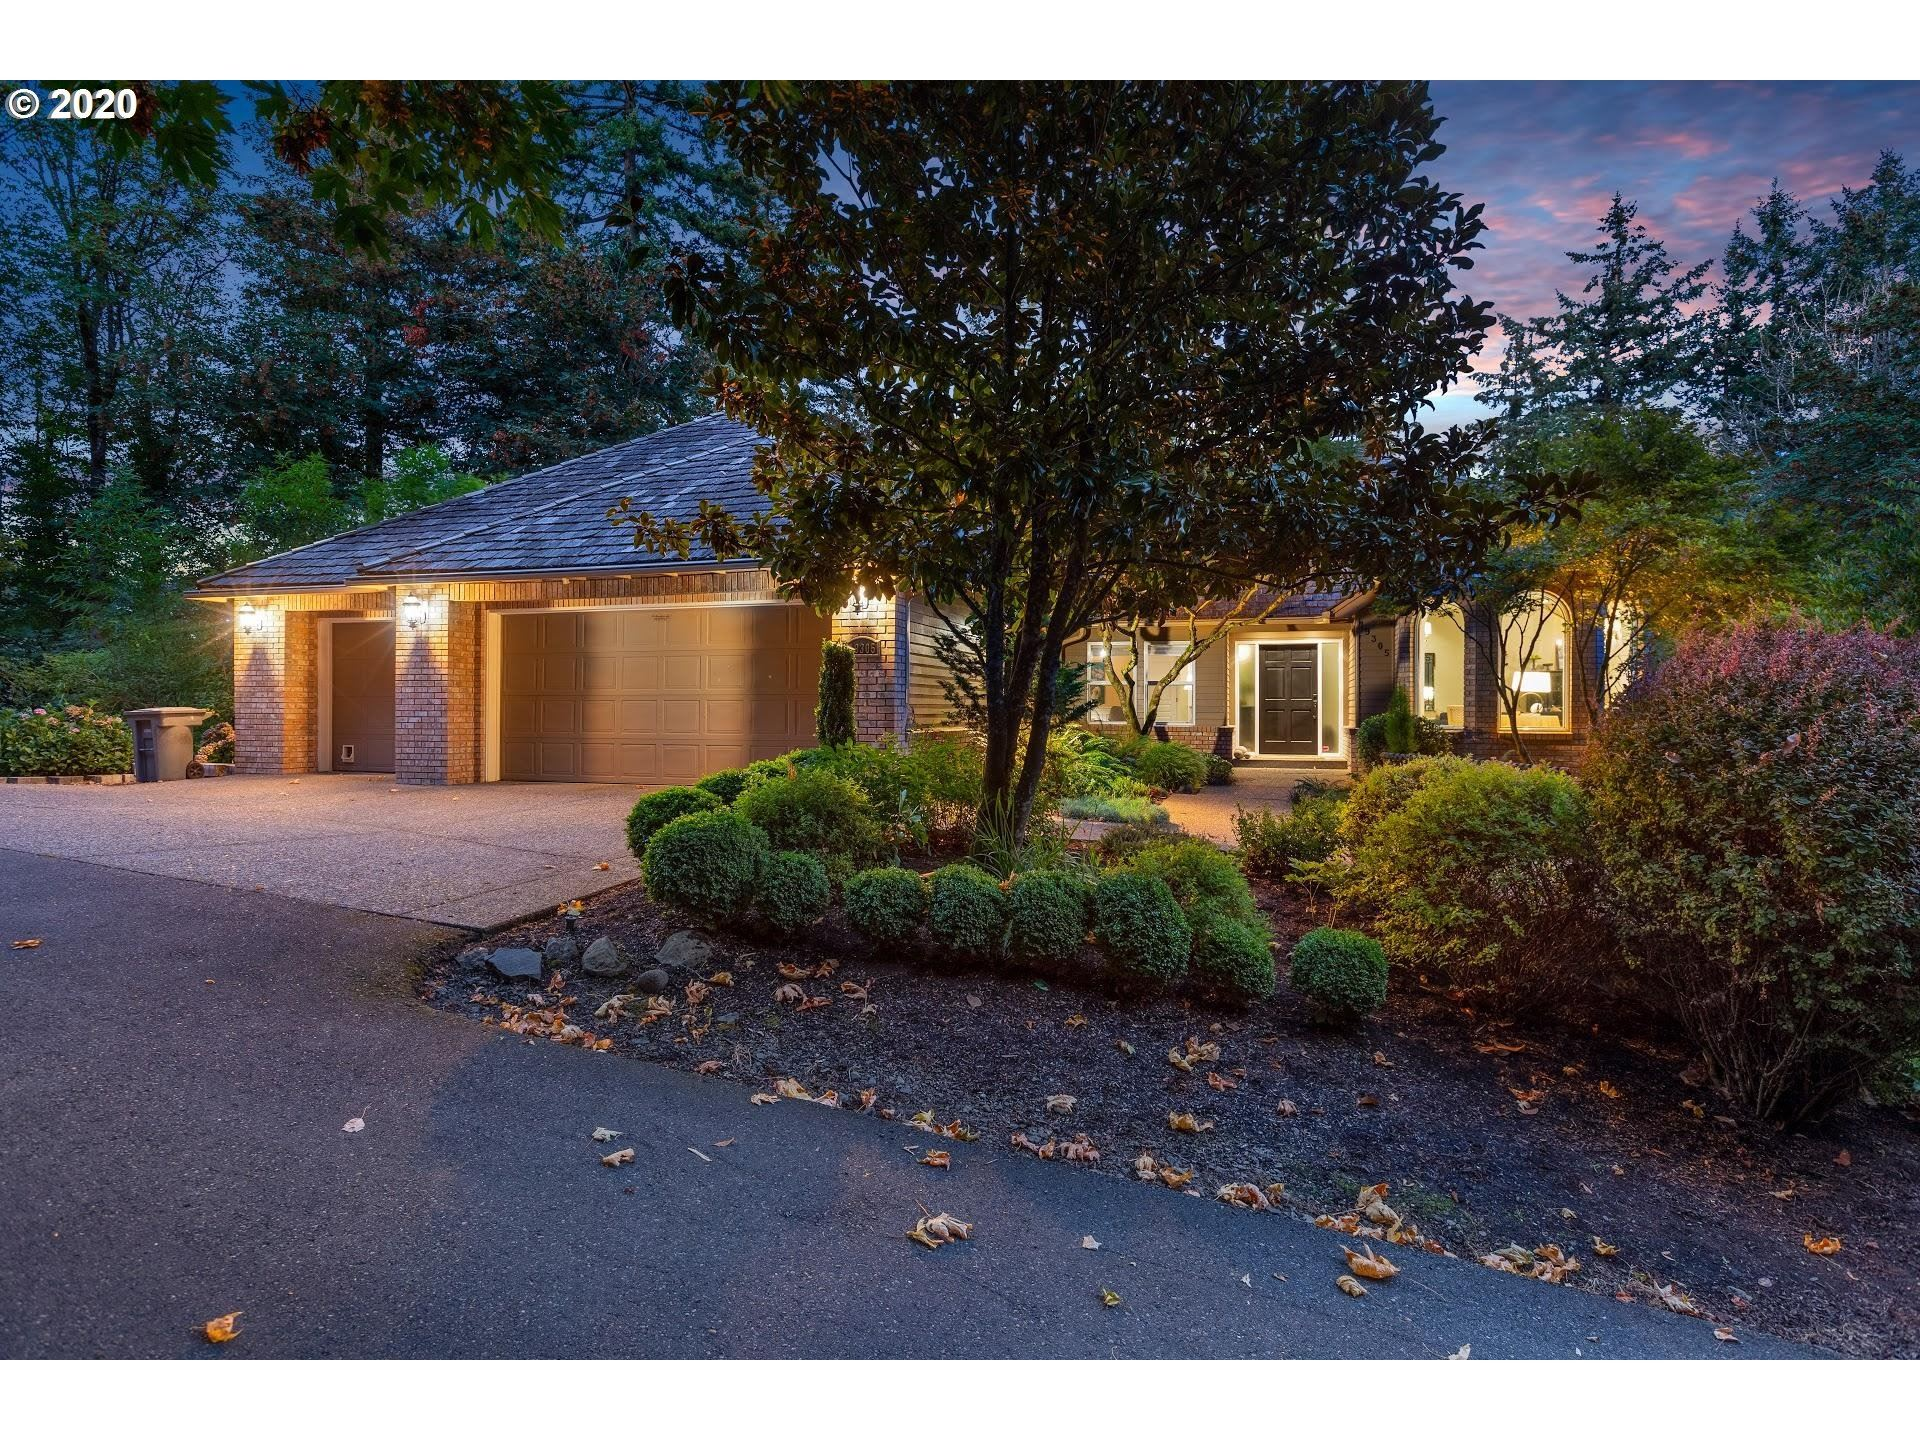 Photo for 19305 HILL TOP RD, Lake Oswego, OR 97034 (MLS # 20599321)